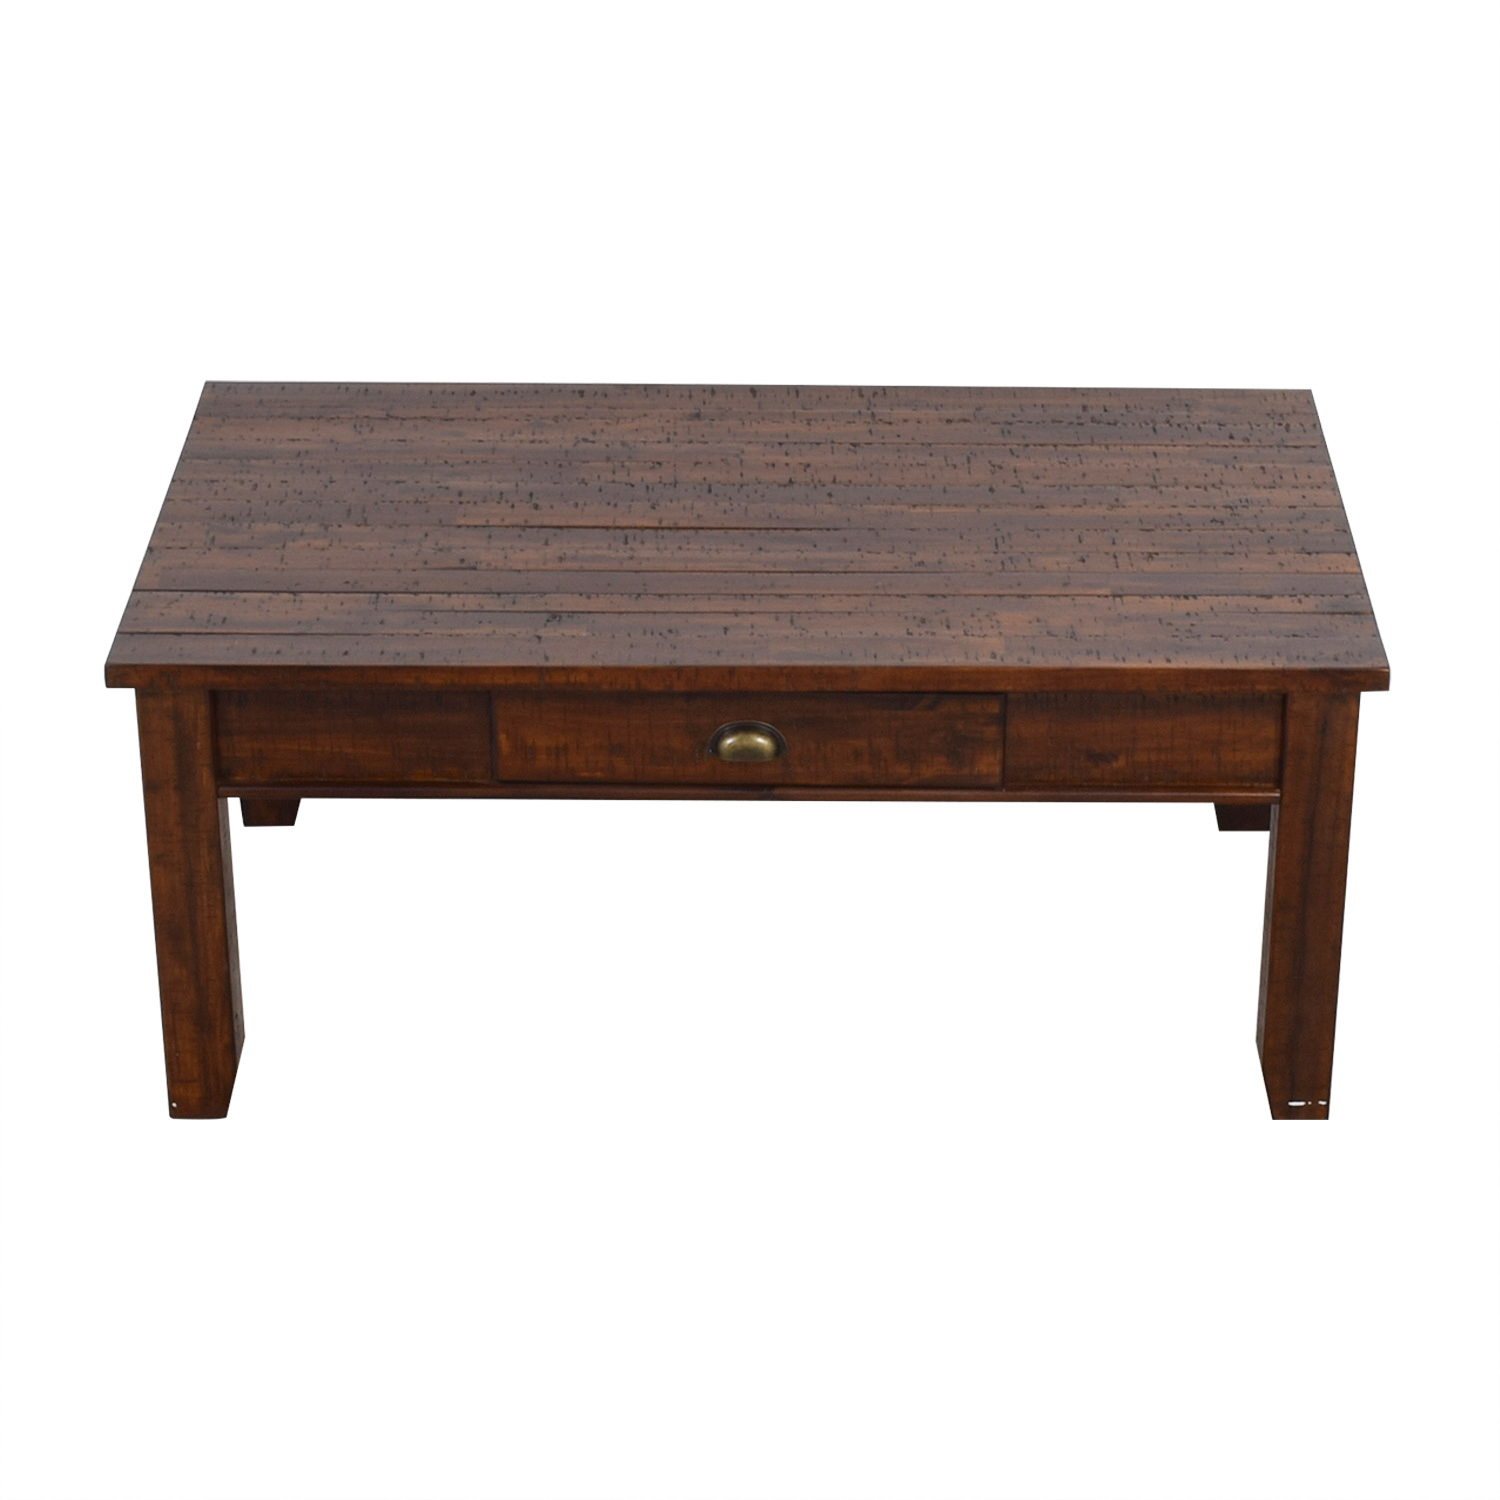 Raymour & Flanigan Urban Lodge Coffee Table / Coffee Tables